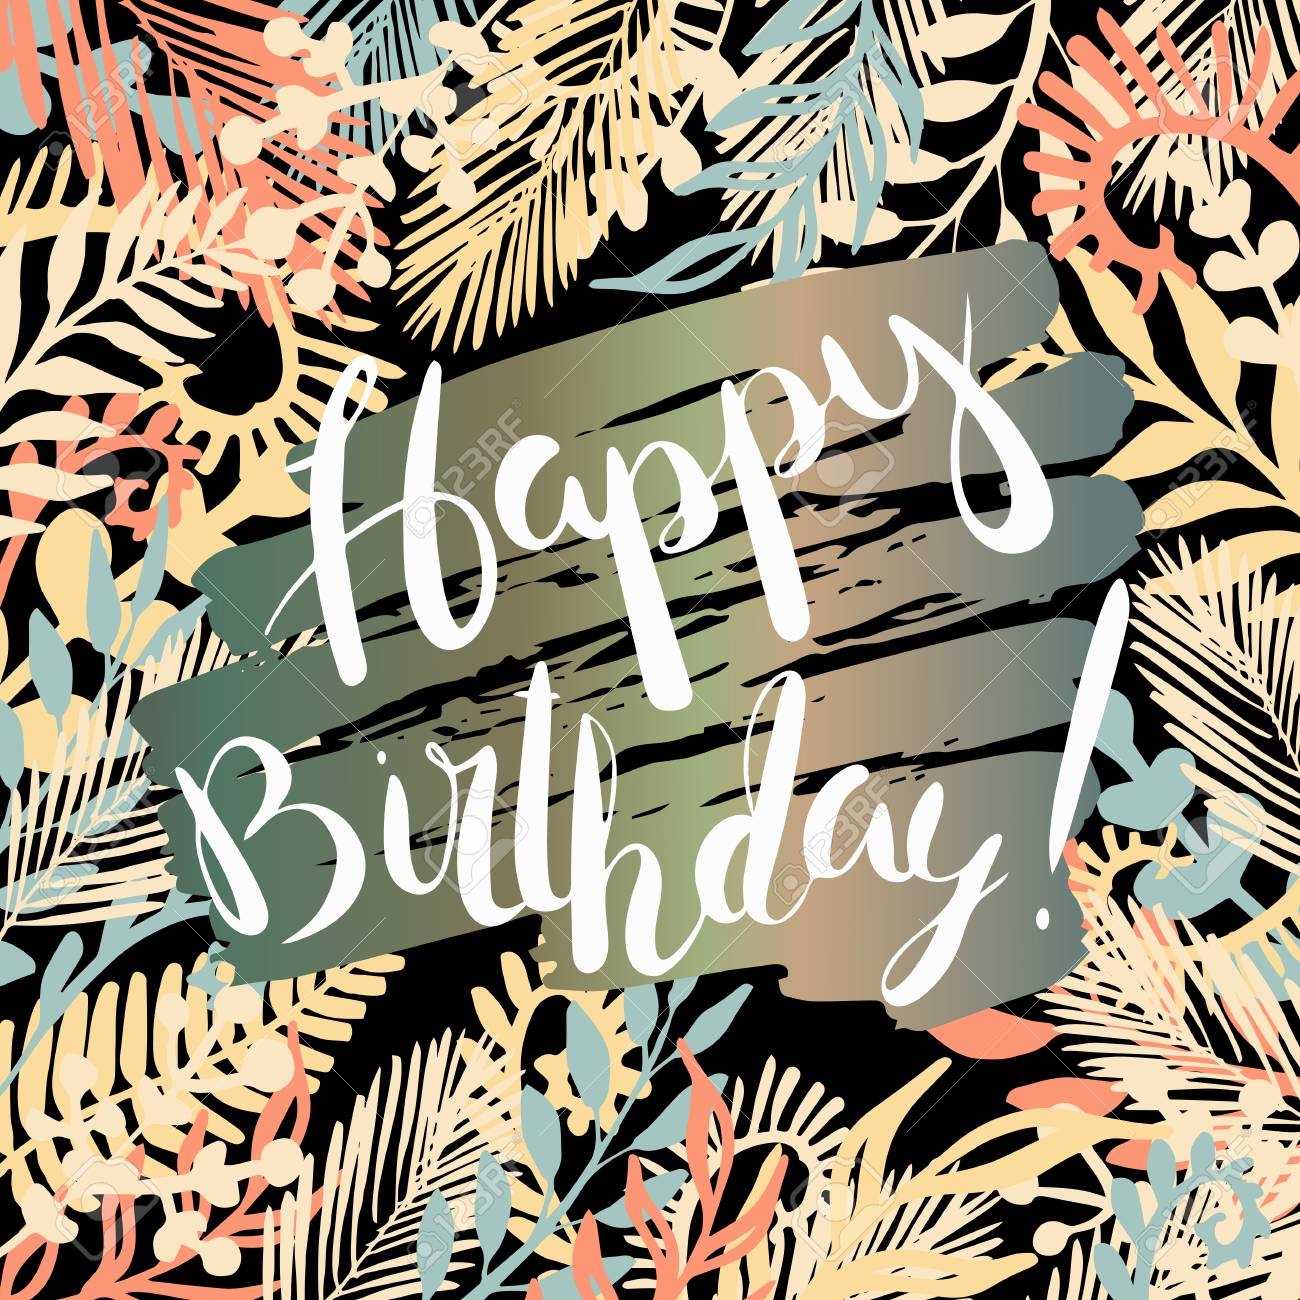 Happy Birthday Greeting Card Template With Handwritten Elegance Royalty Free Cliparts Vectors And Stock Illustration Image 70795967